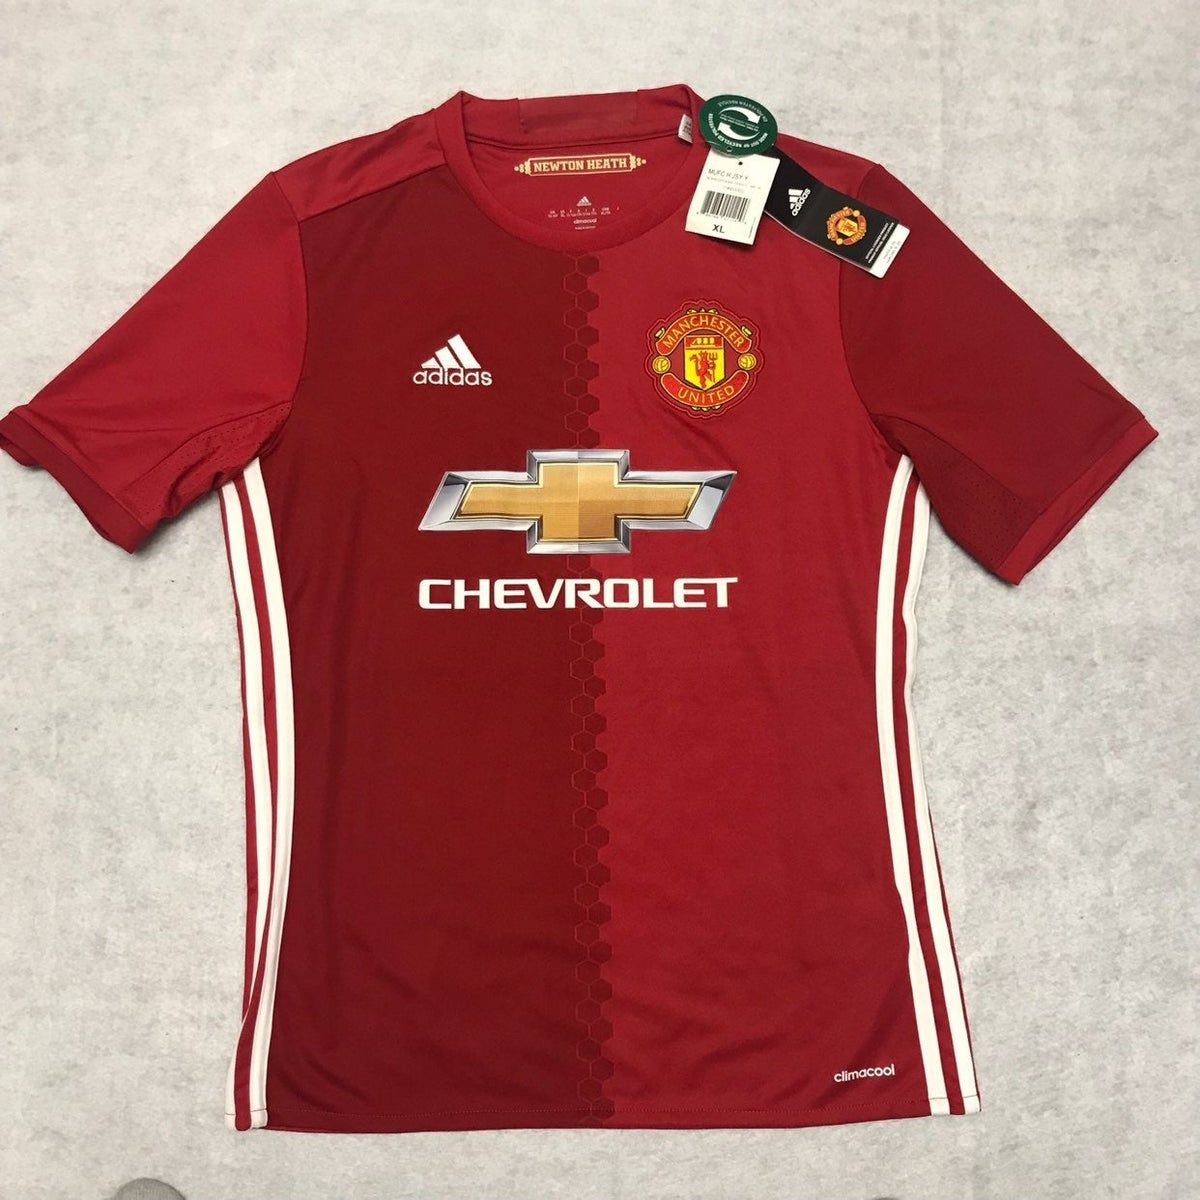 Manchester United Soccer Jersey In 2020 Soccer Jersey Manchester United Soccer Manchester United Youth